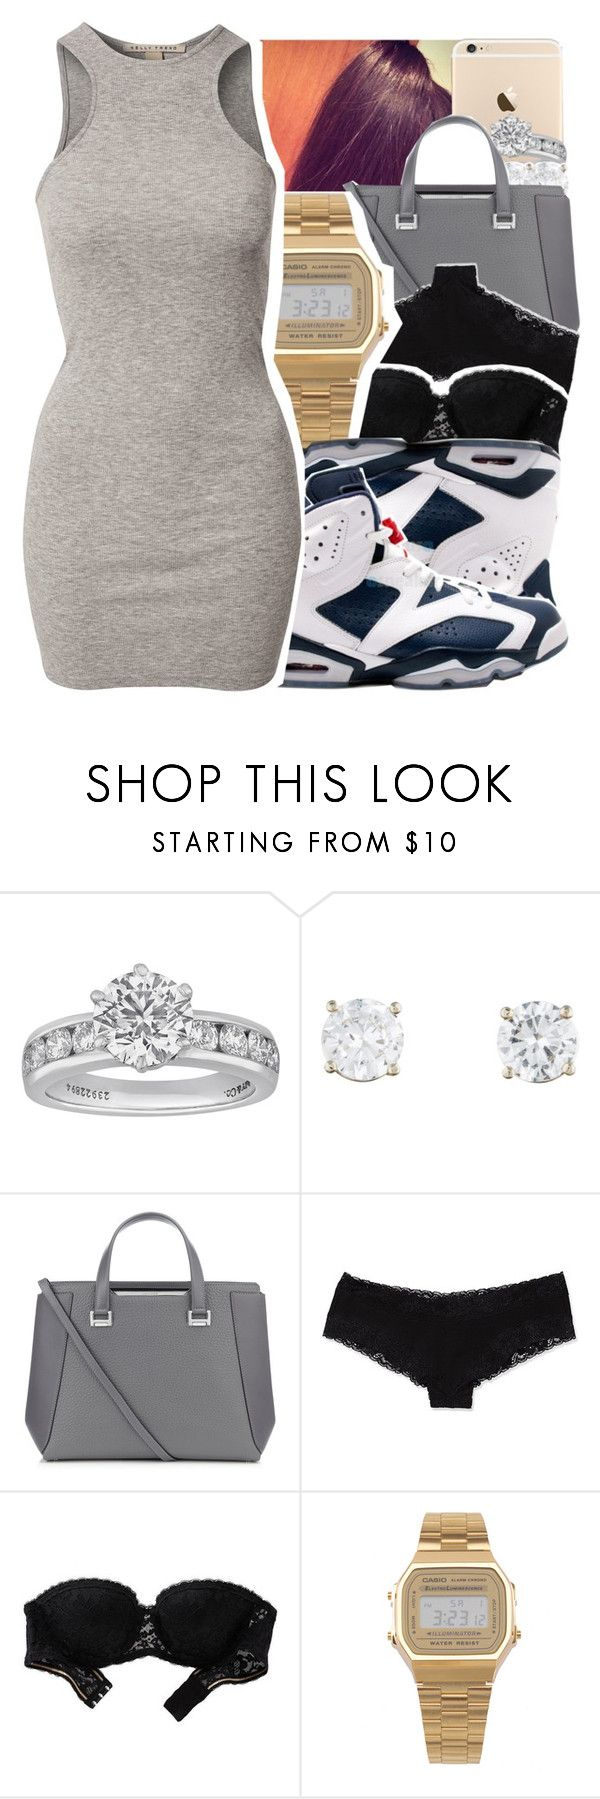 """November 7th, 2015"" by itrendyprinceton ❤ liked on Polyvore featuring Tiffany & Co., Jimmy Choo, Victoria's Secret, Aerie, American Apparel, Retrò and NLY Trend"